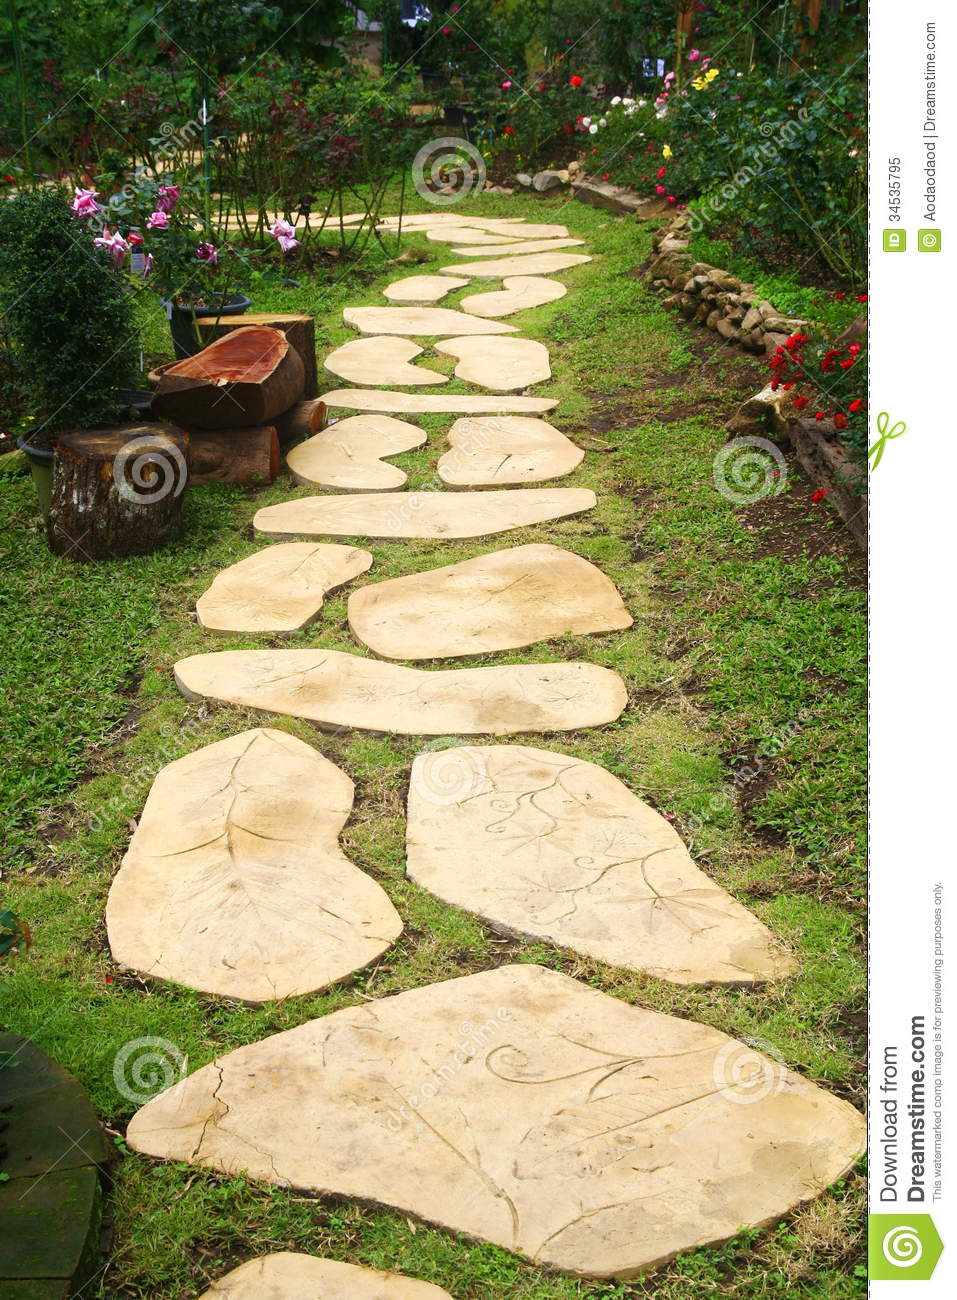 Stone walkway in garden royalty free stock photo image 34535795 - Royalty Free Stock Photo Garden Stone Thailand Walkway